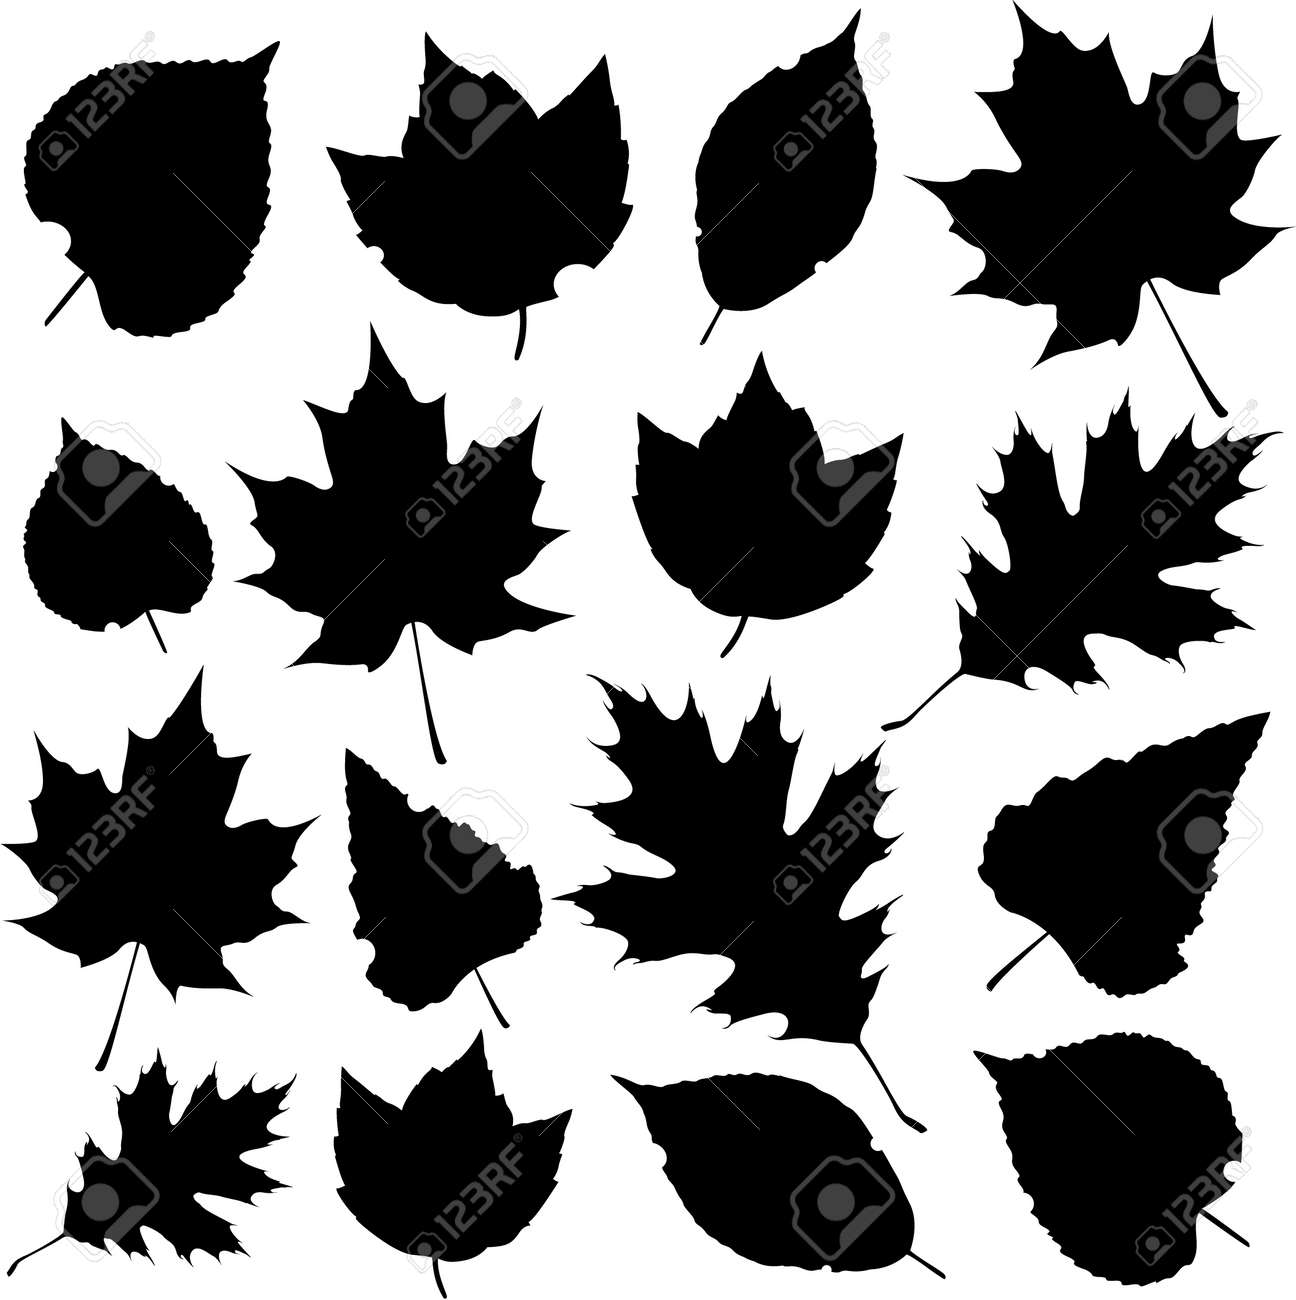 Vector Leaf Silhouettes